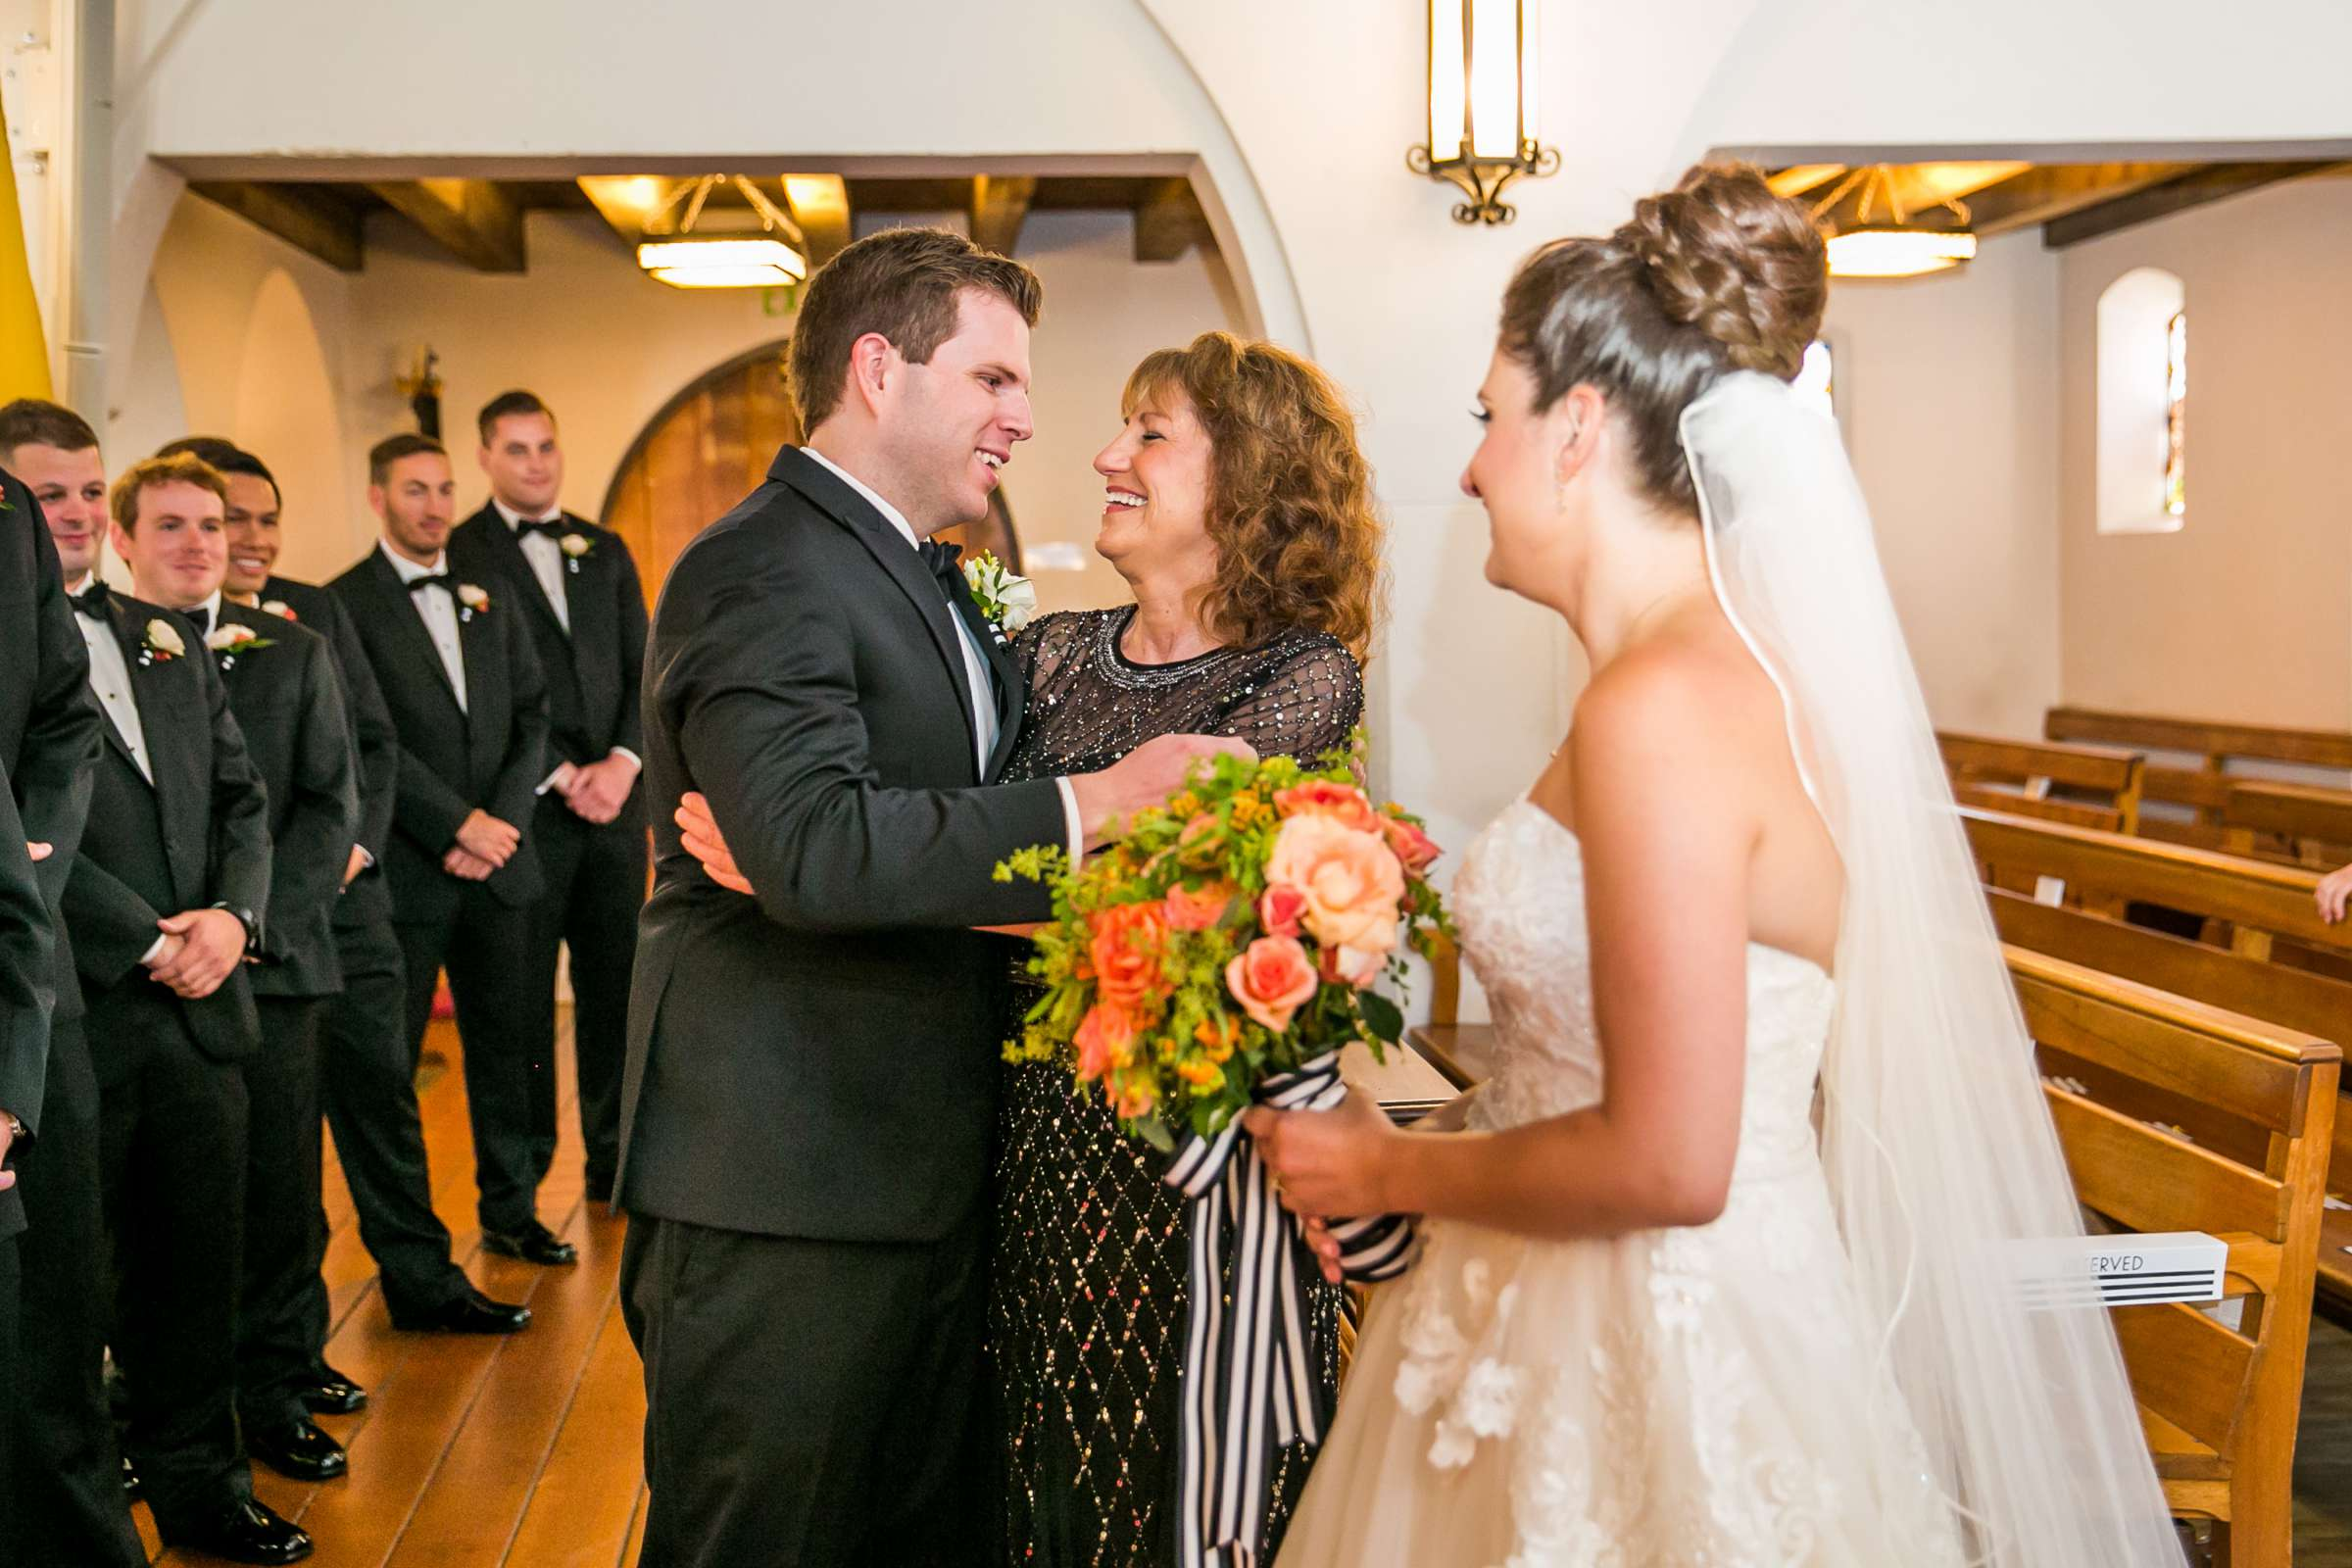 Bahia Hotel Wedding coordinated by I Do Weddings, Meredith and Jack Wedding Photo #29 by True Photography